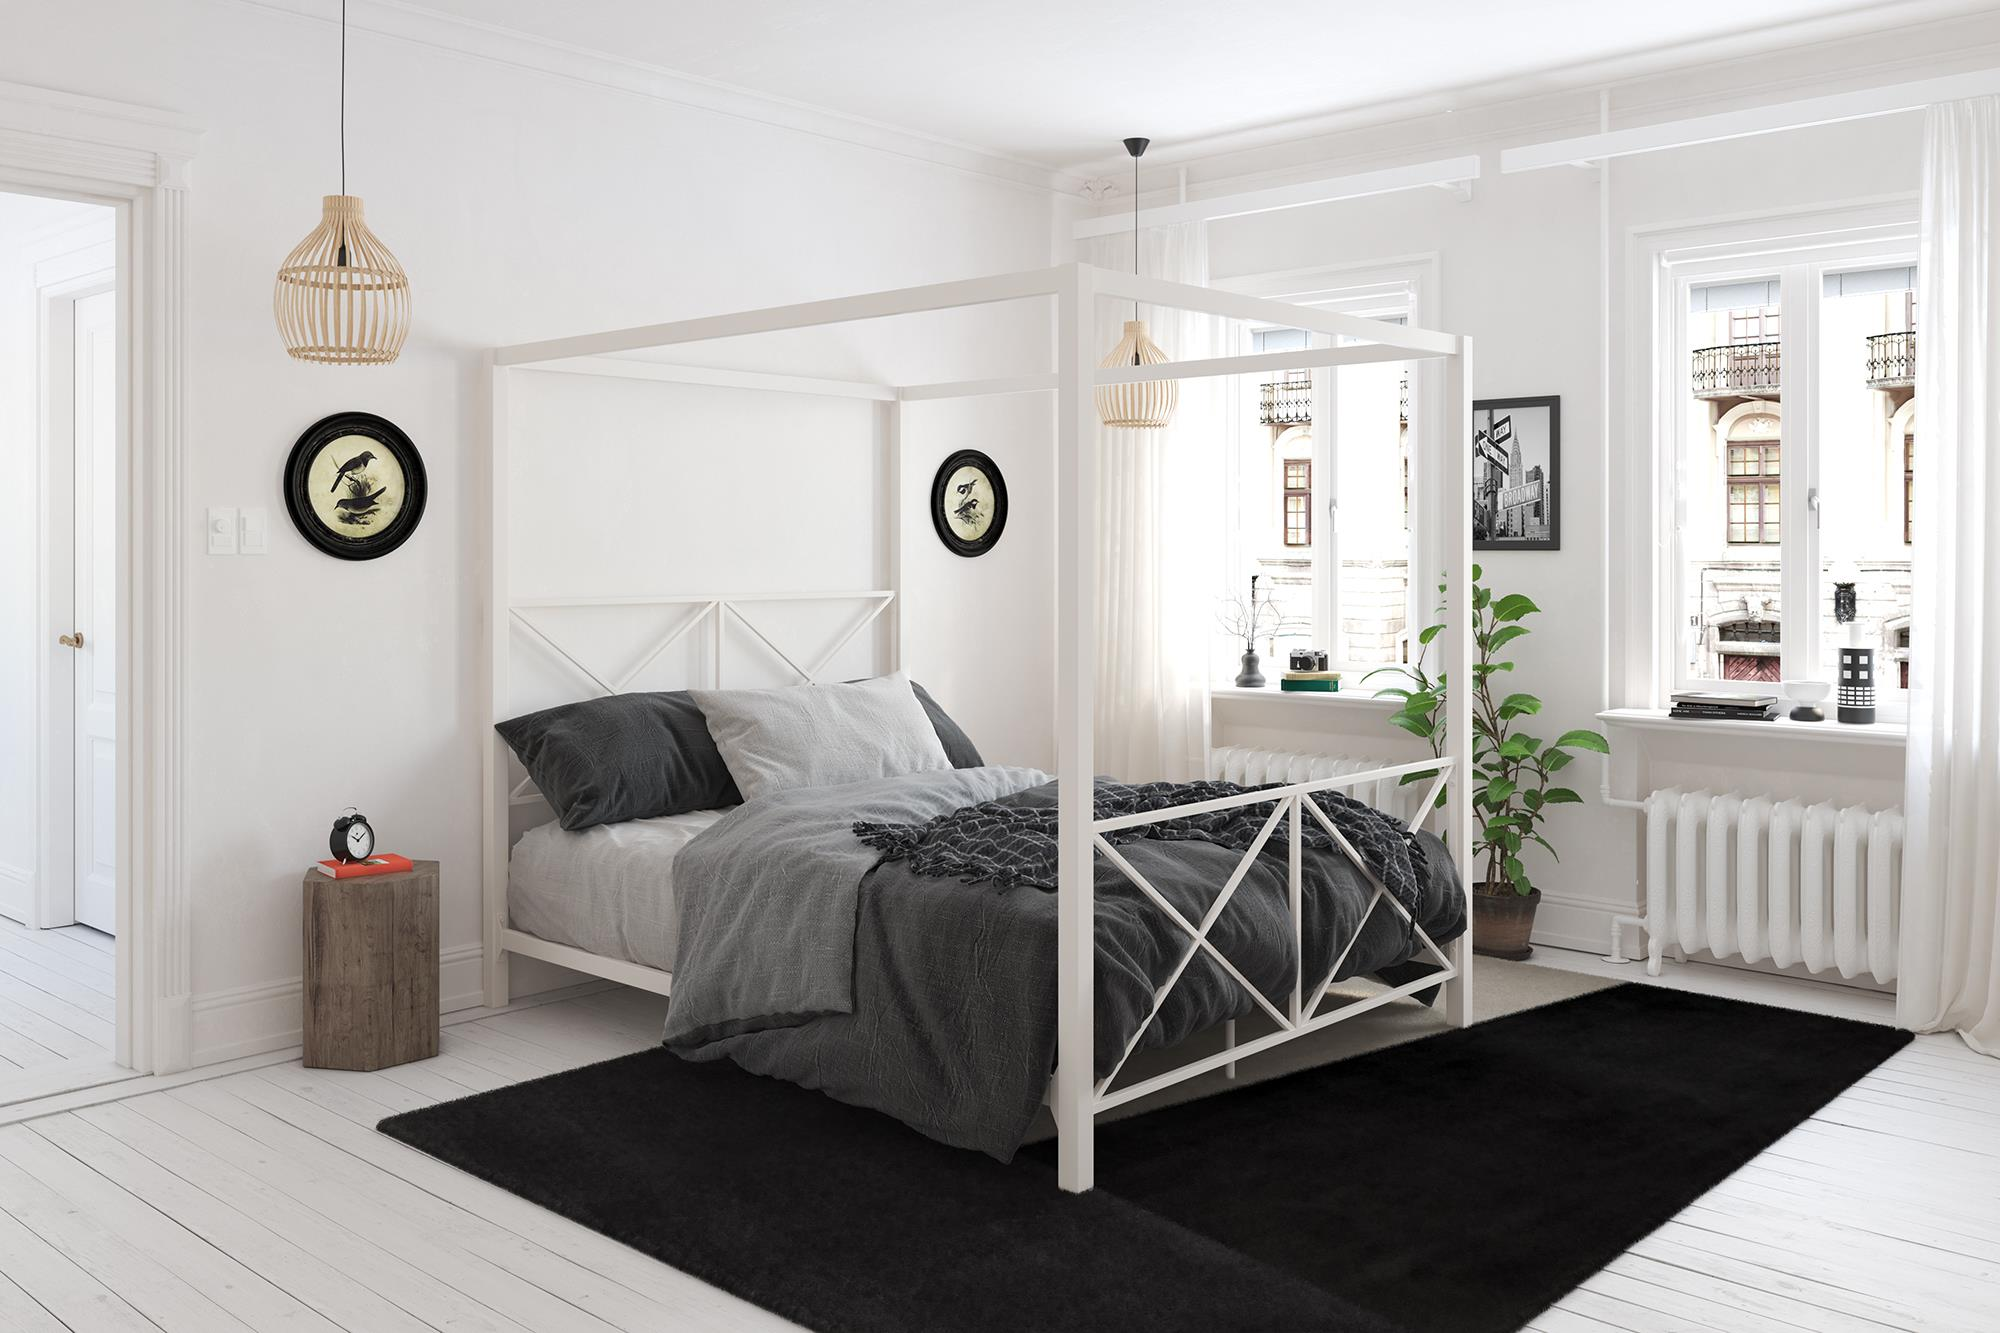 Dhp rosedale metal canopy bed multiple sizes multiple colors